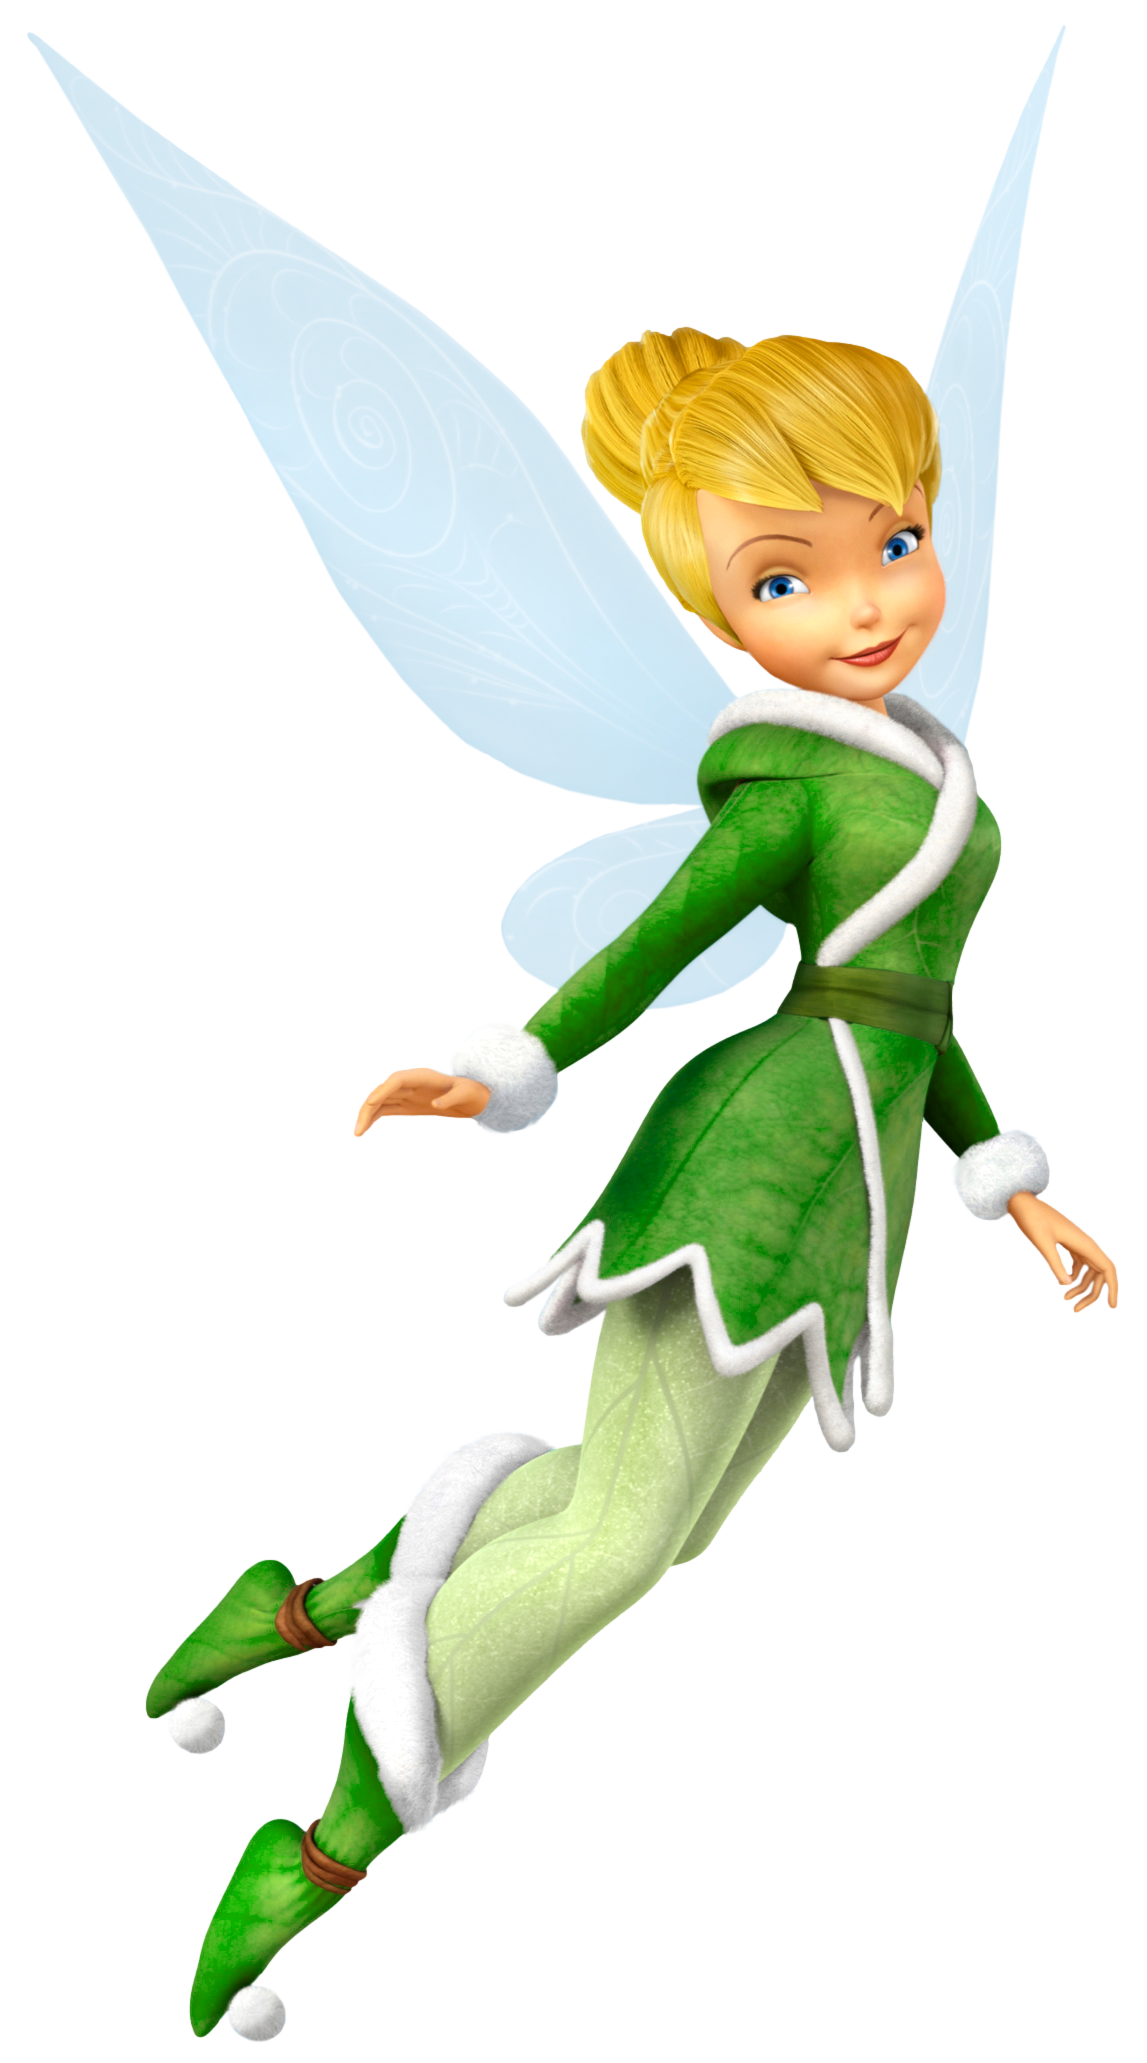 Fairy png cartoon gallery. Transparent tinkerbell image black and white